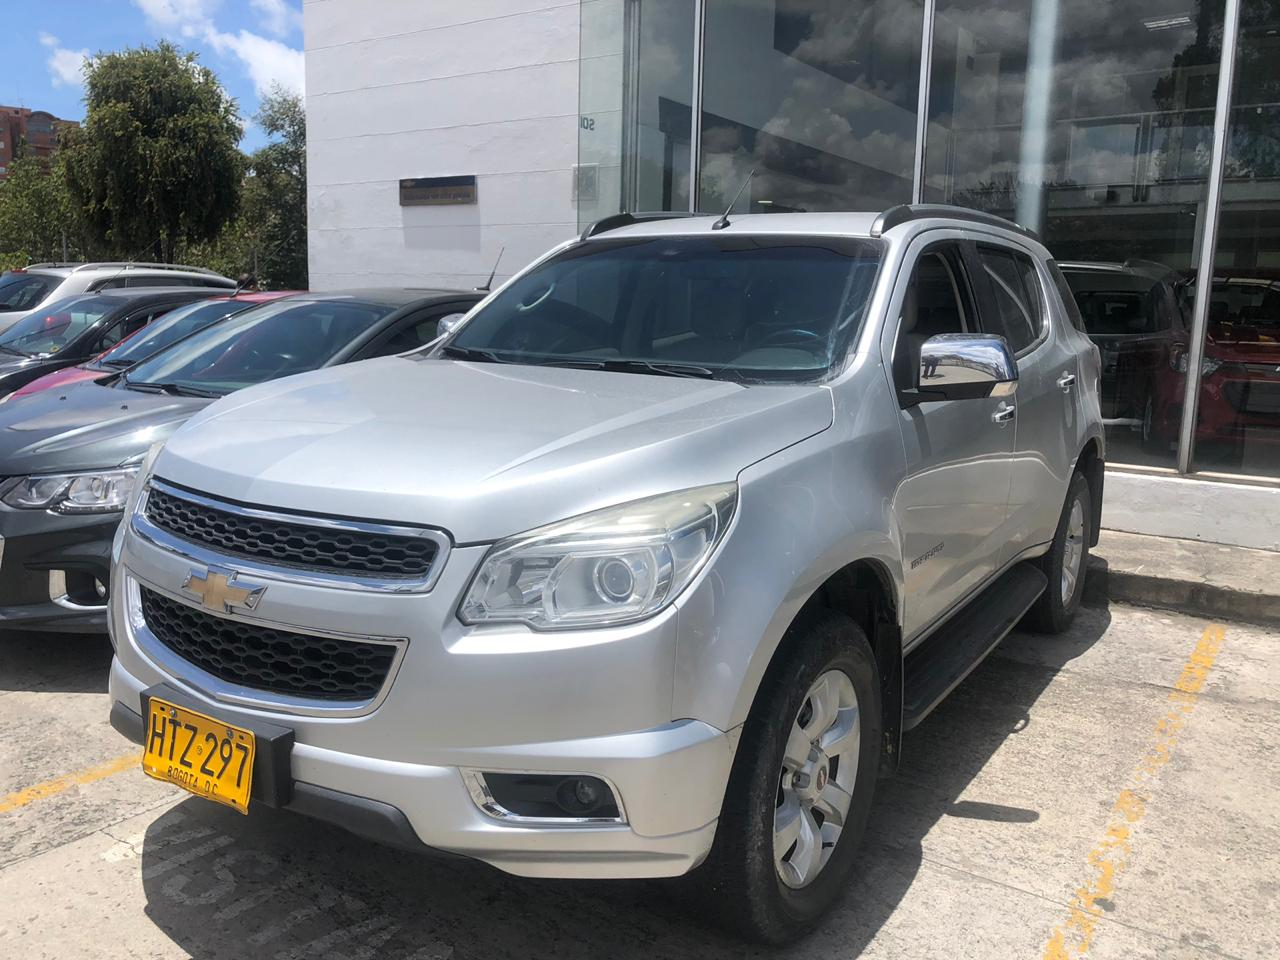 2013 CHEVROLET TRAILBLAZER E4 AT LTZ PASAJEROS 2,8